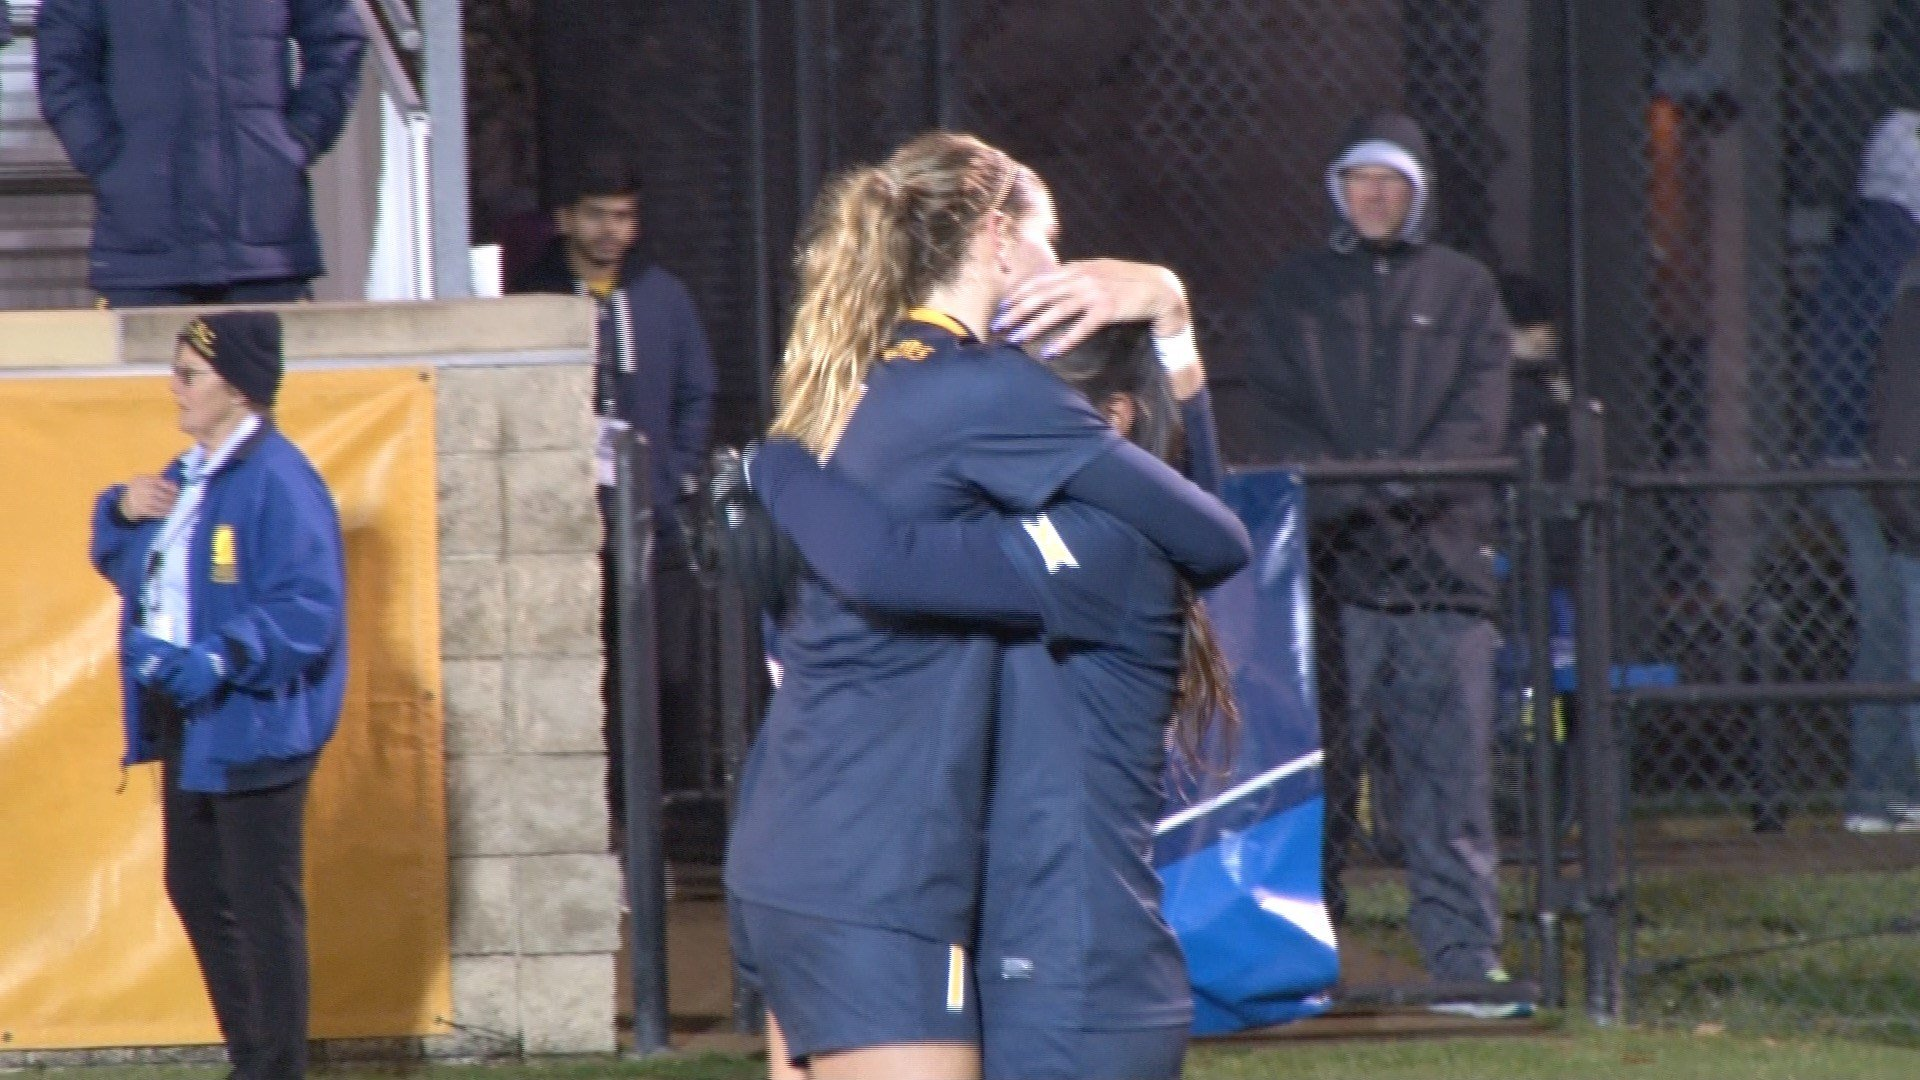 Grace Cutler and Carla Portillo share a hug after WVU's Sweet 16 loss to Penn St.